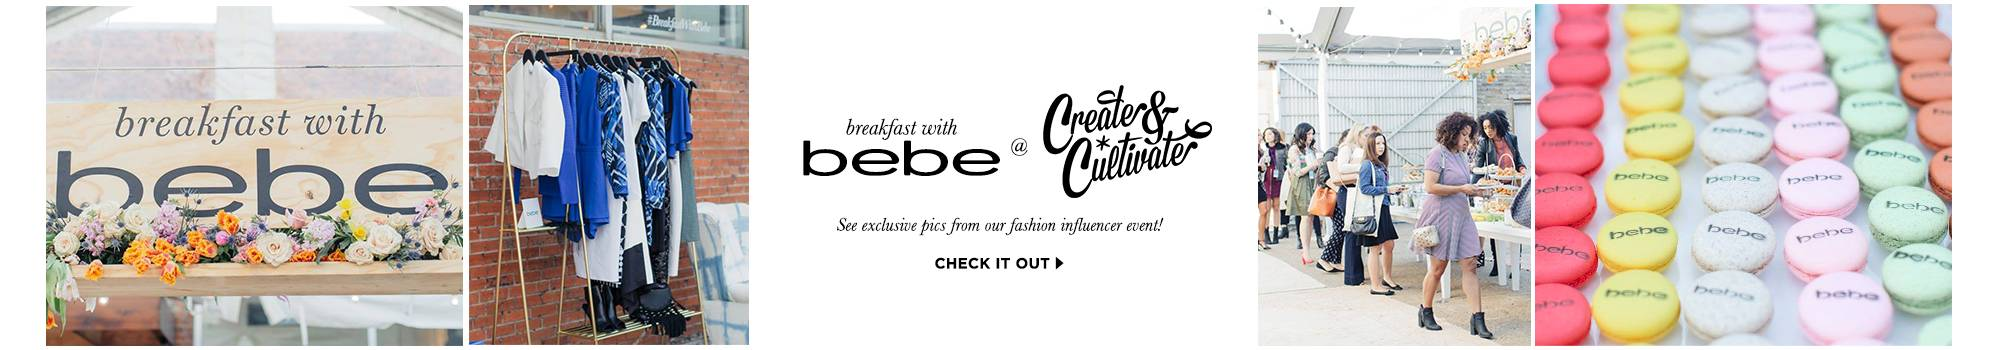 breakfast with bebe. see exclusive pics from our fashion influencer event!